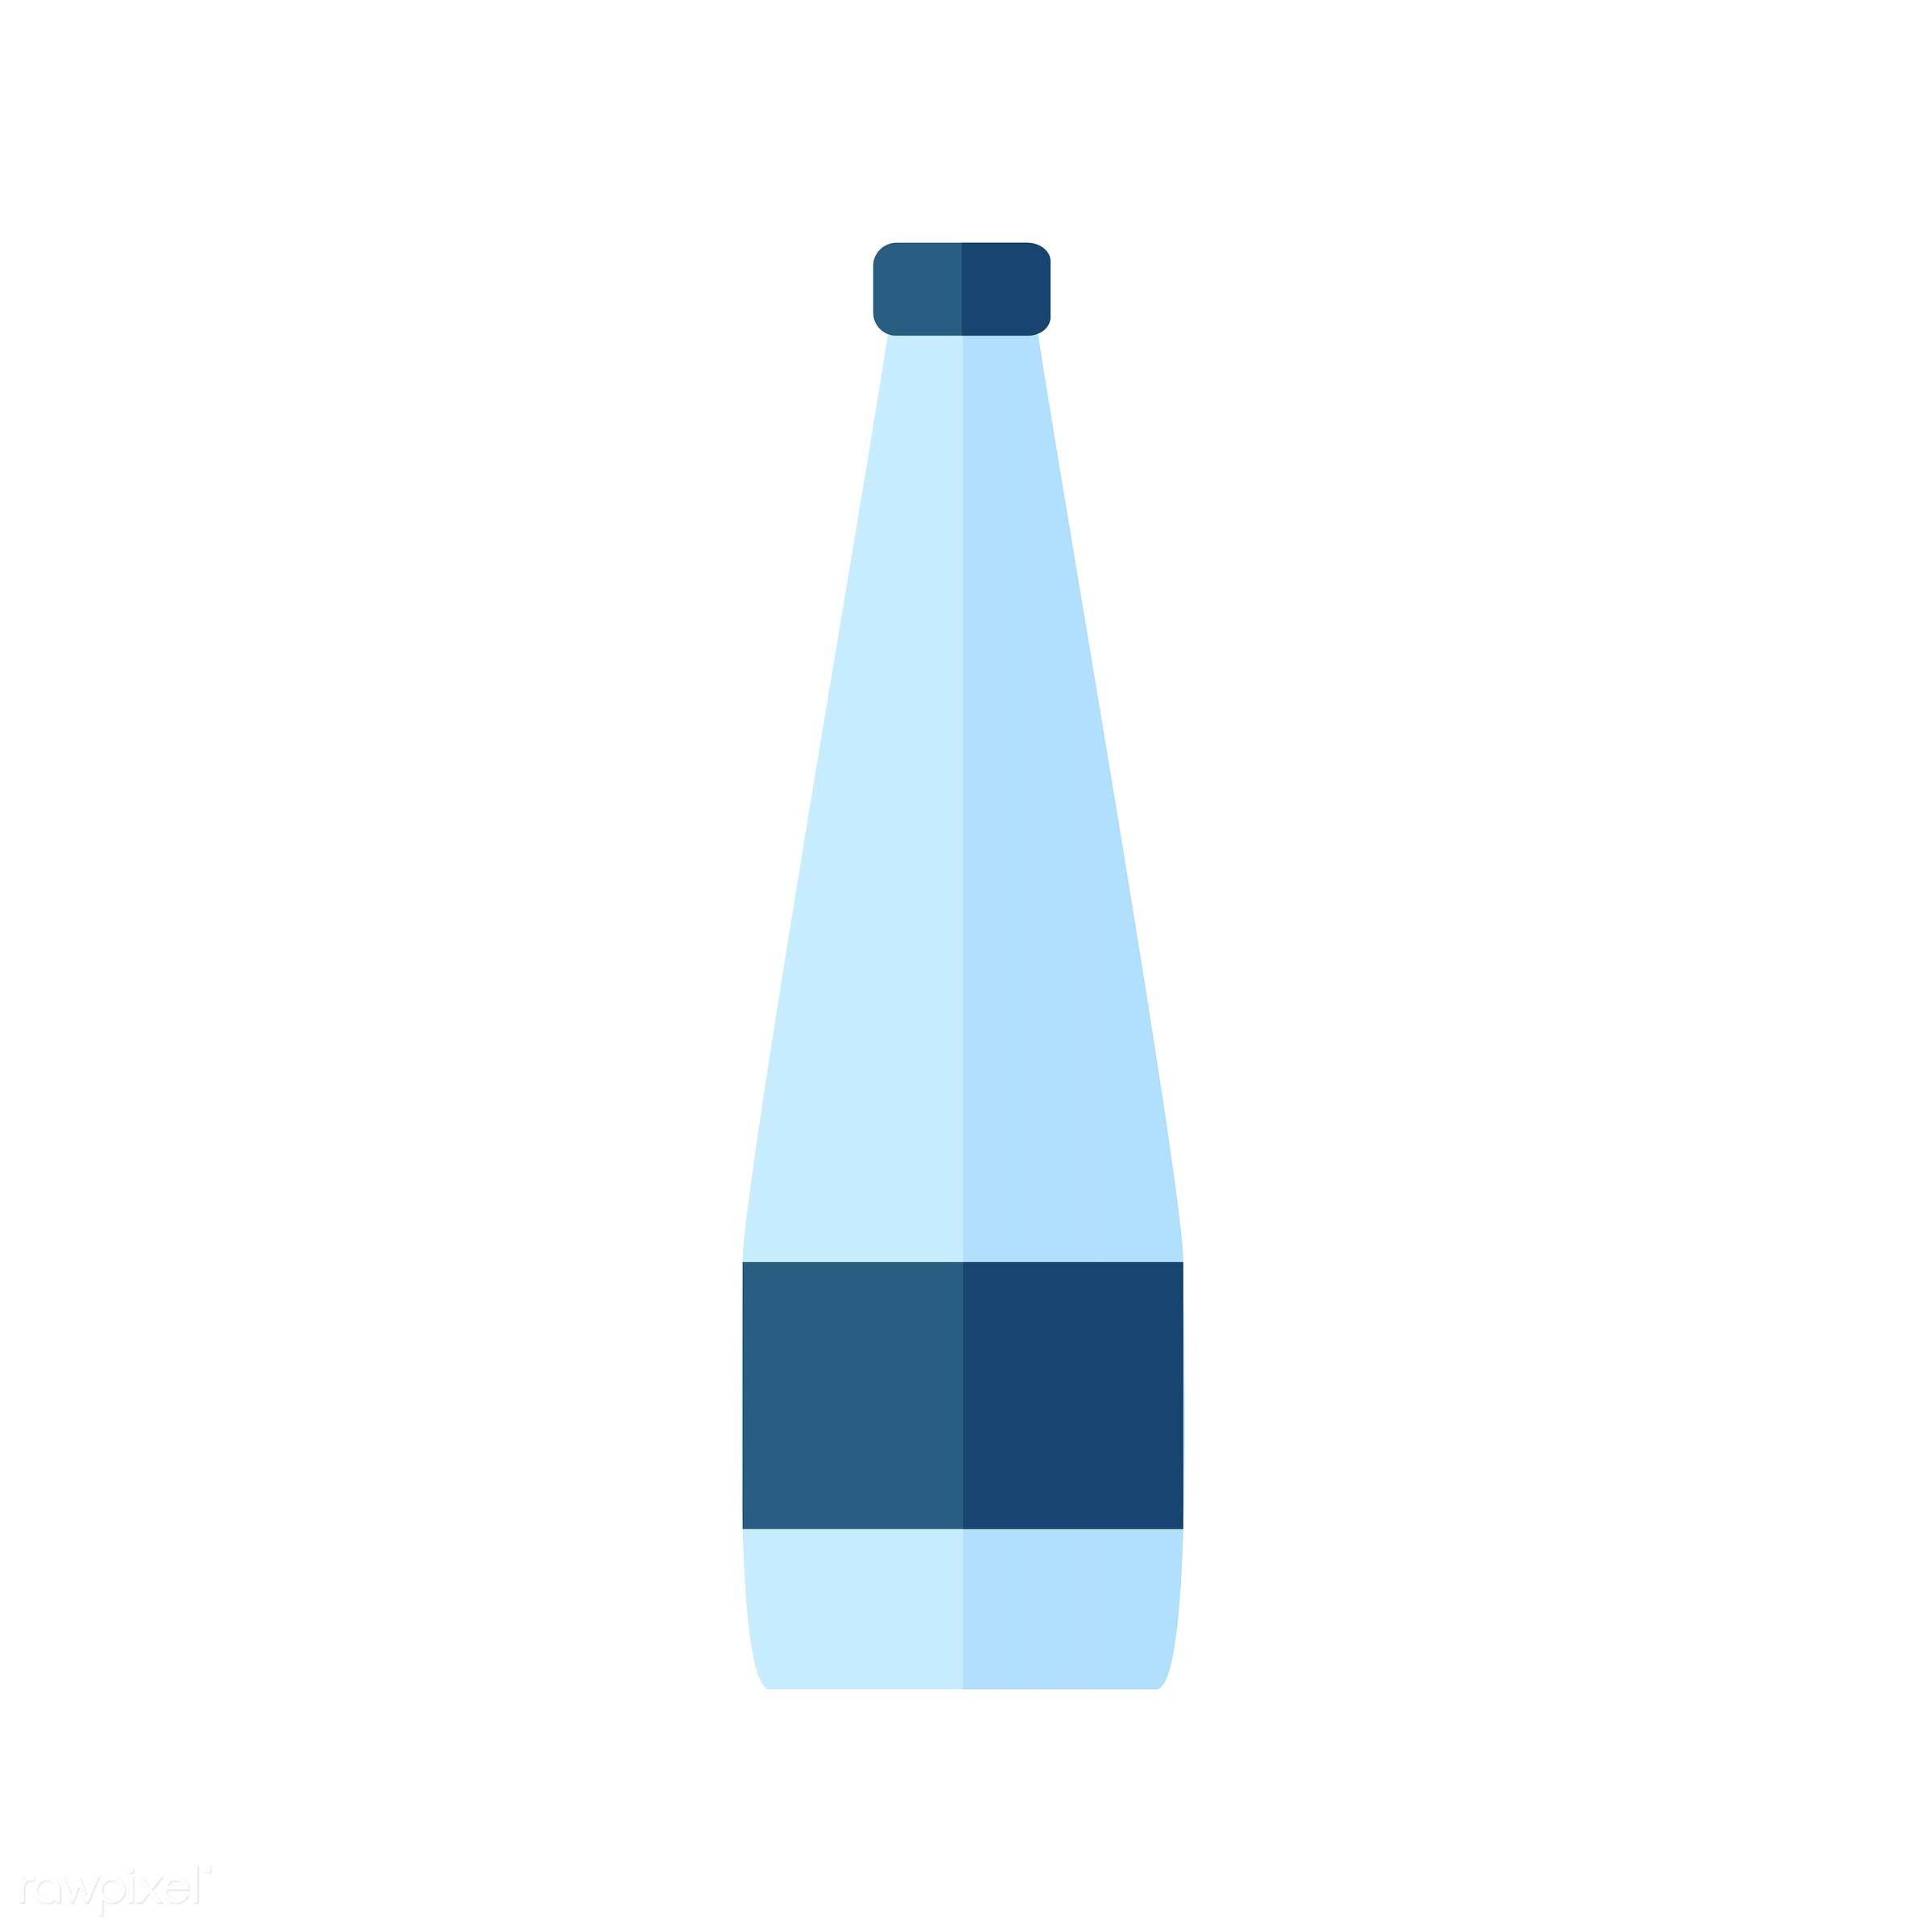 vector, graphic, illustration, icon, symbol, colorful, cute, drink, beverage, water, blue, glass bottle, water bottle